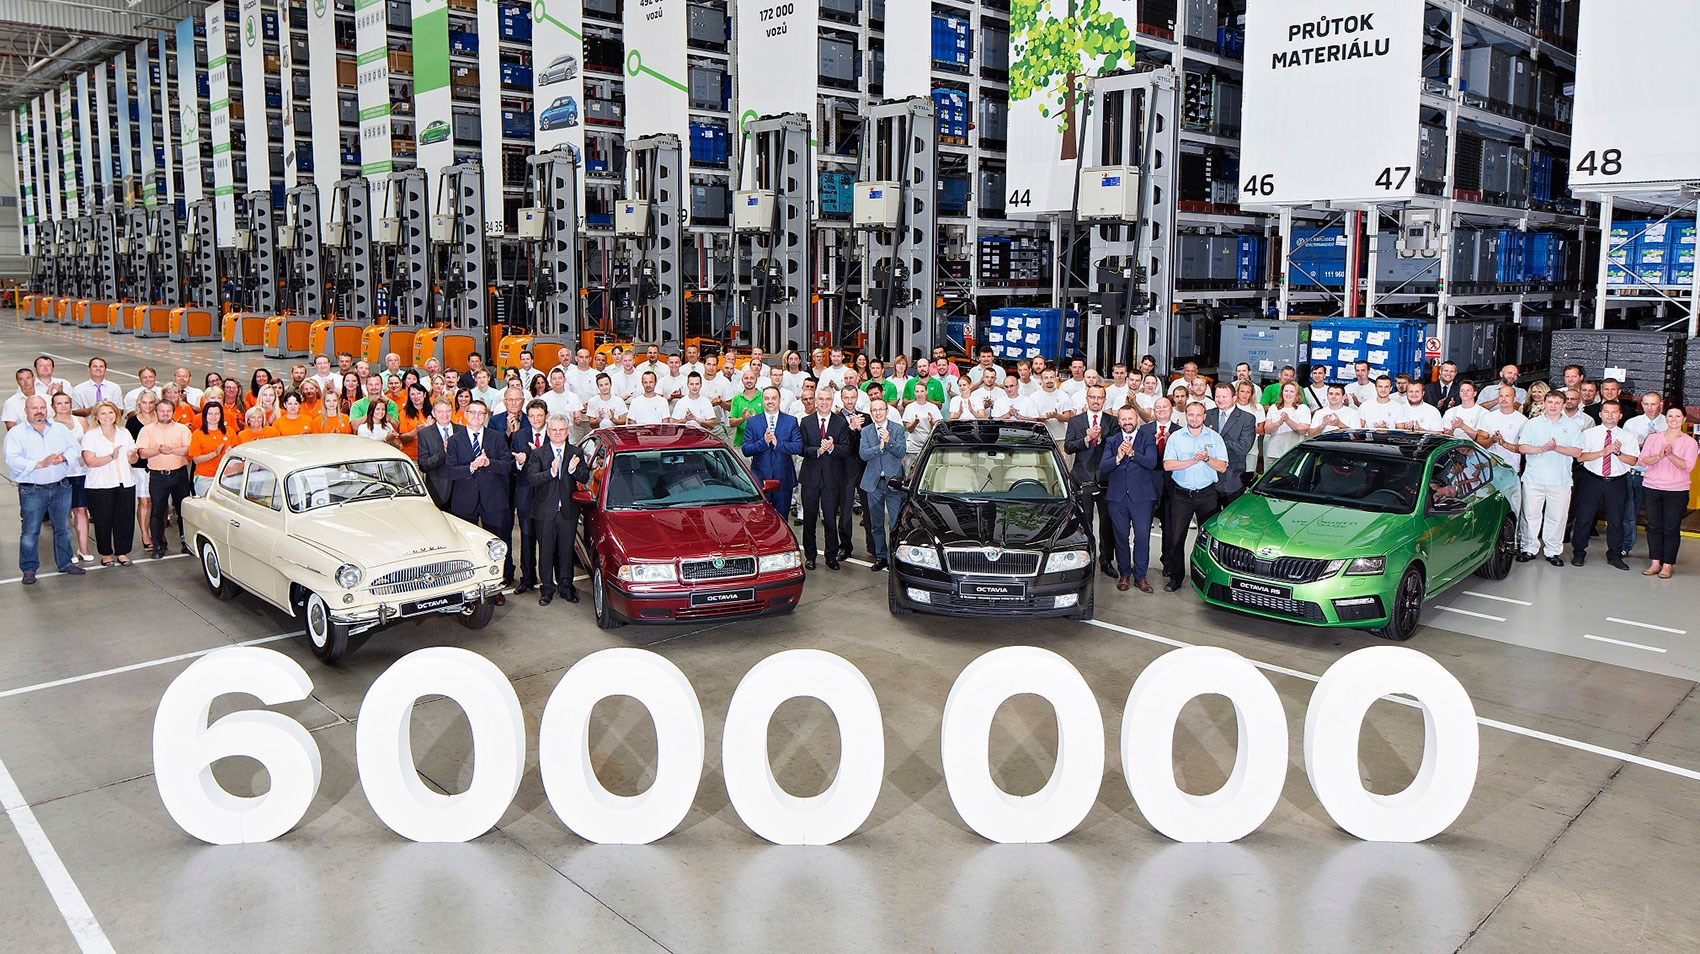 Skoda New Product Plans 2017 19 Car Magazine 2008 Volkswagen Beetle Front Suspension Components Parts Diagram Passed The 6 Million Cars Produced Milestone In Summer